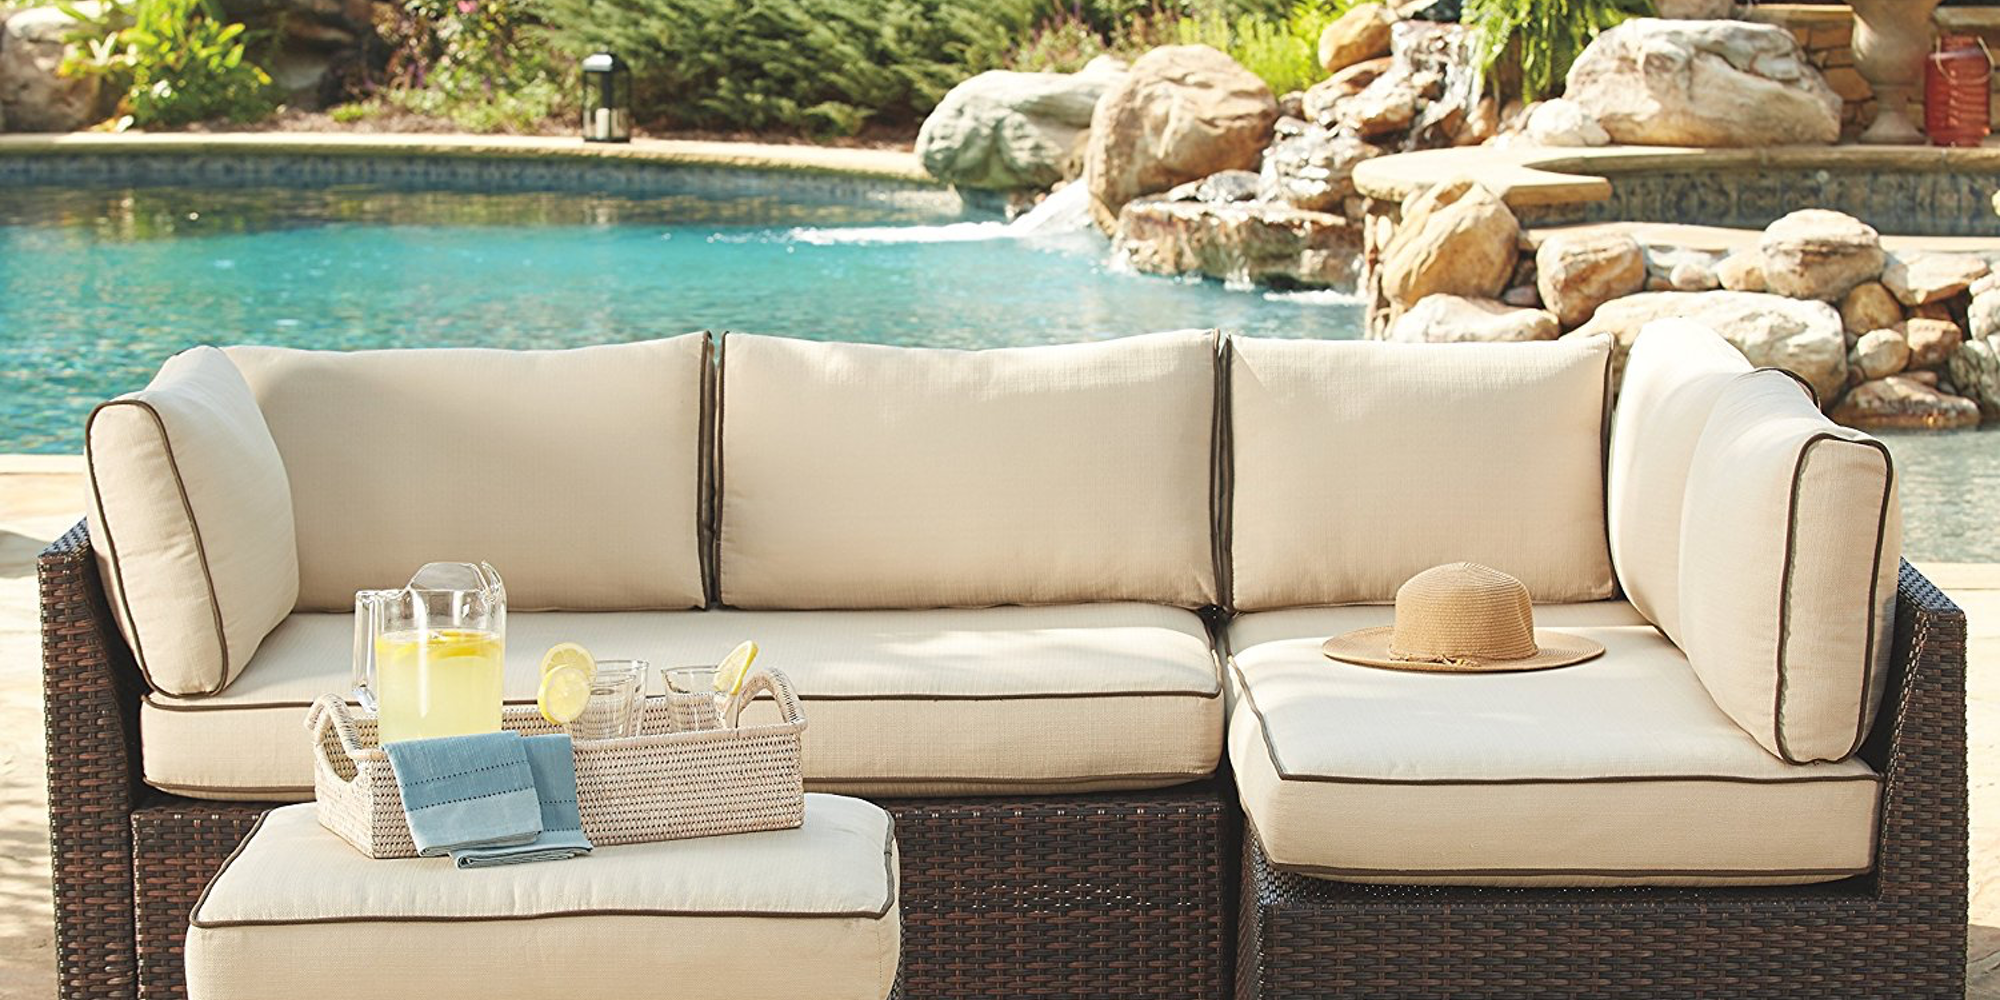 Amazon Discounts Select Ashley Furniture Outdoor Patio Gear From $73 Shipped